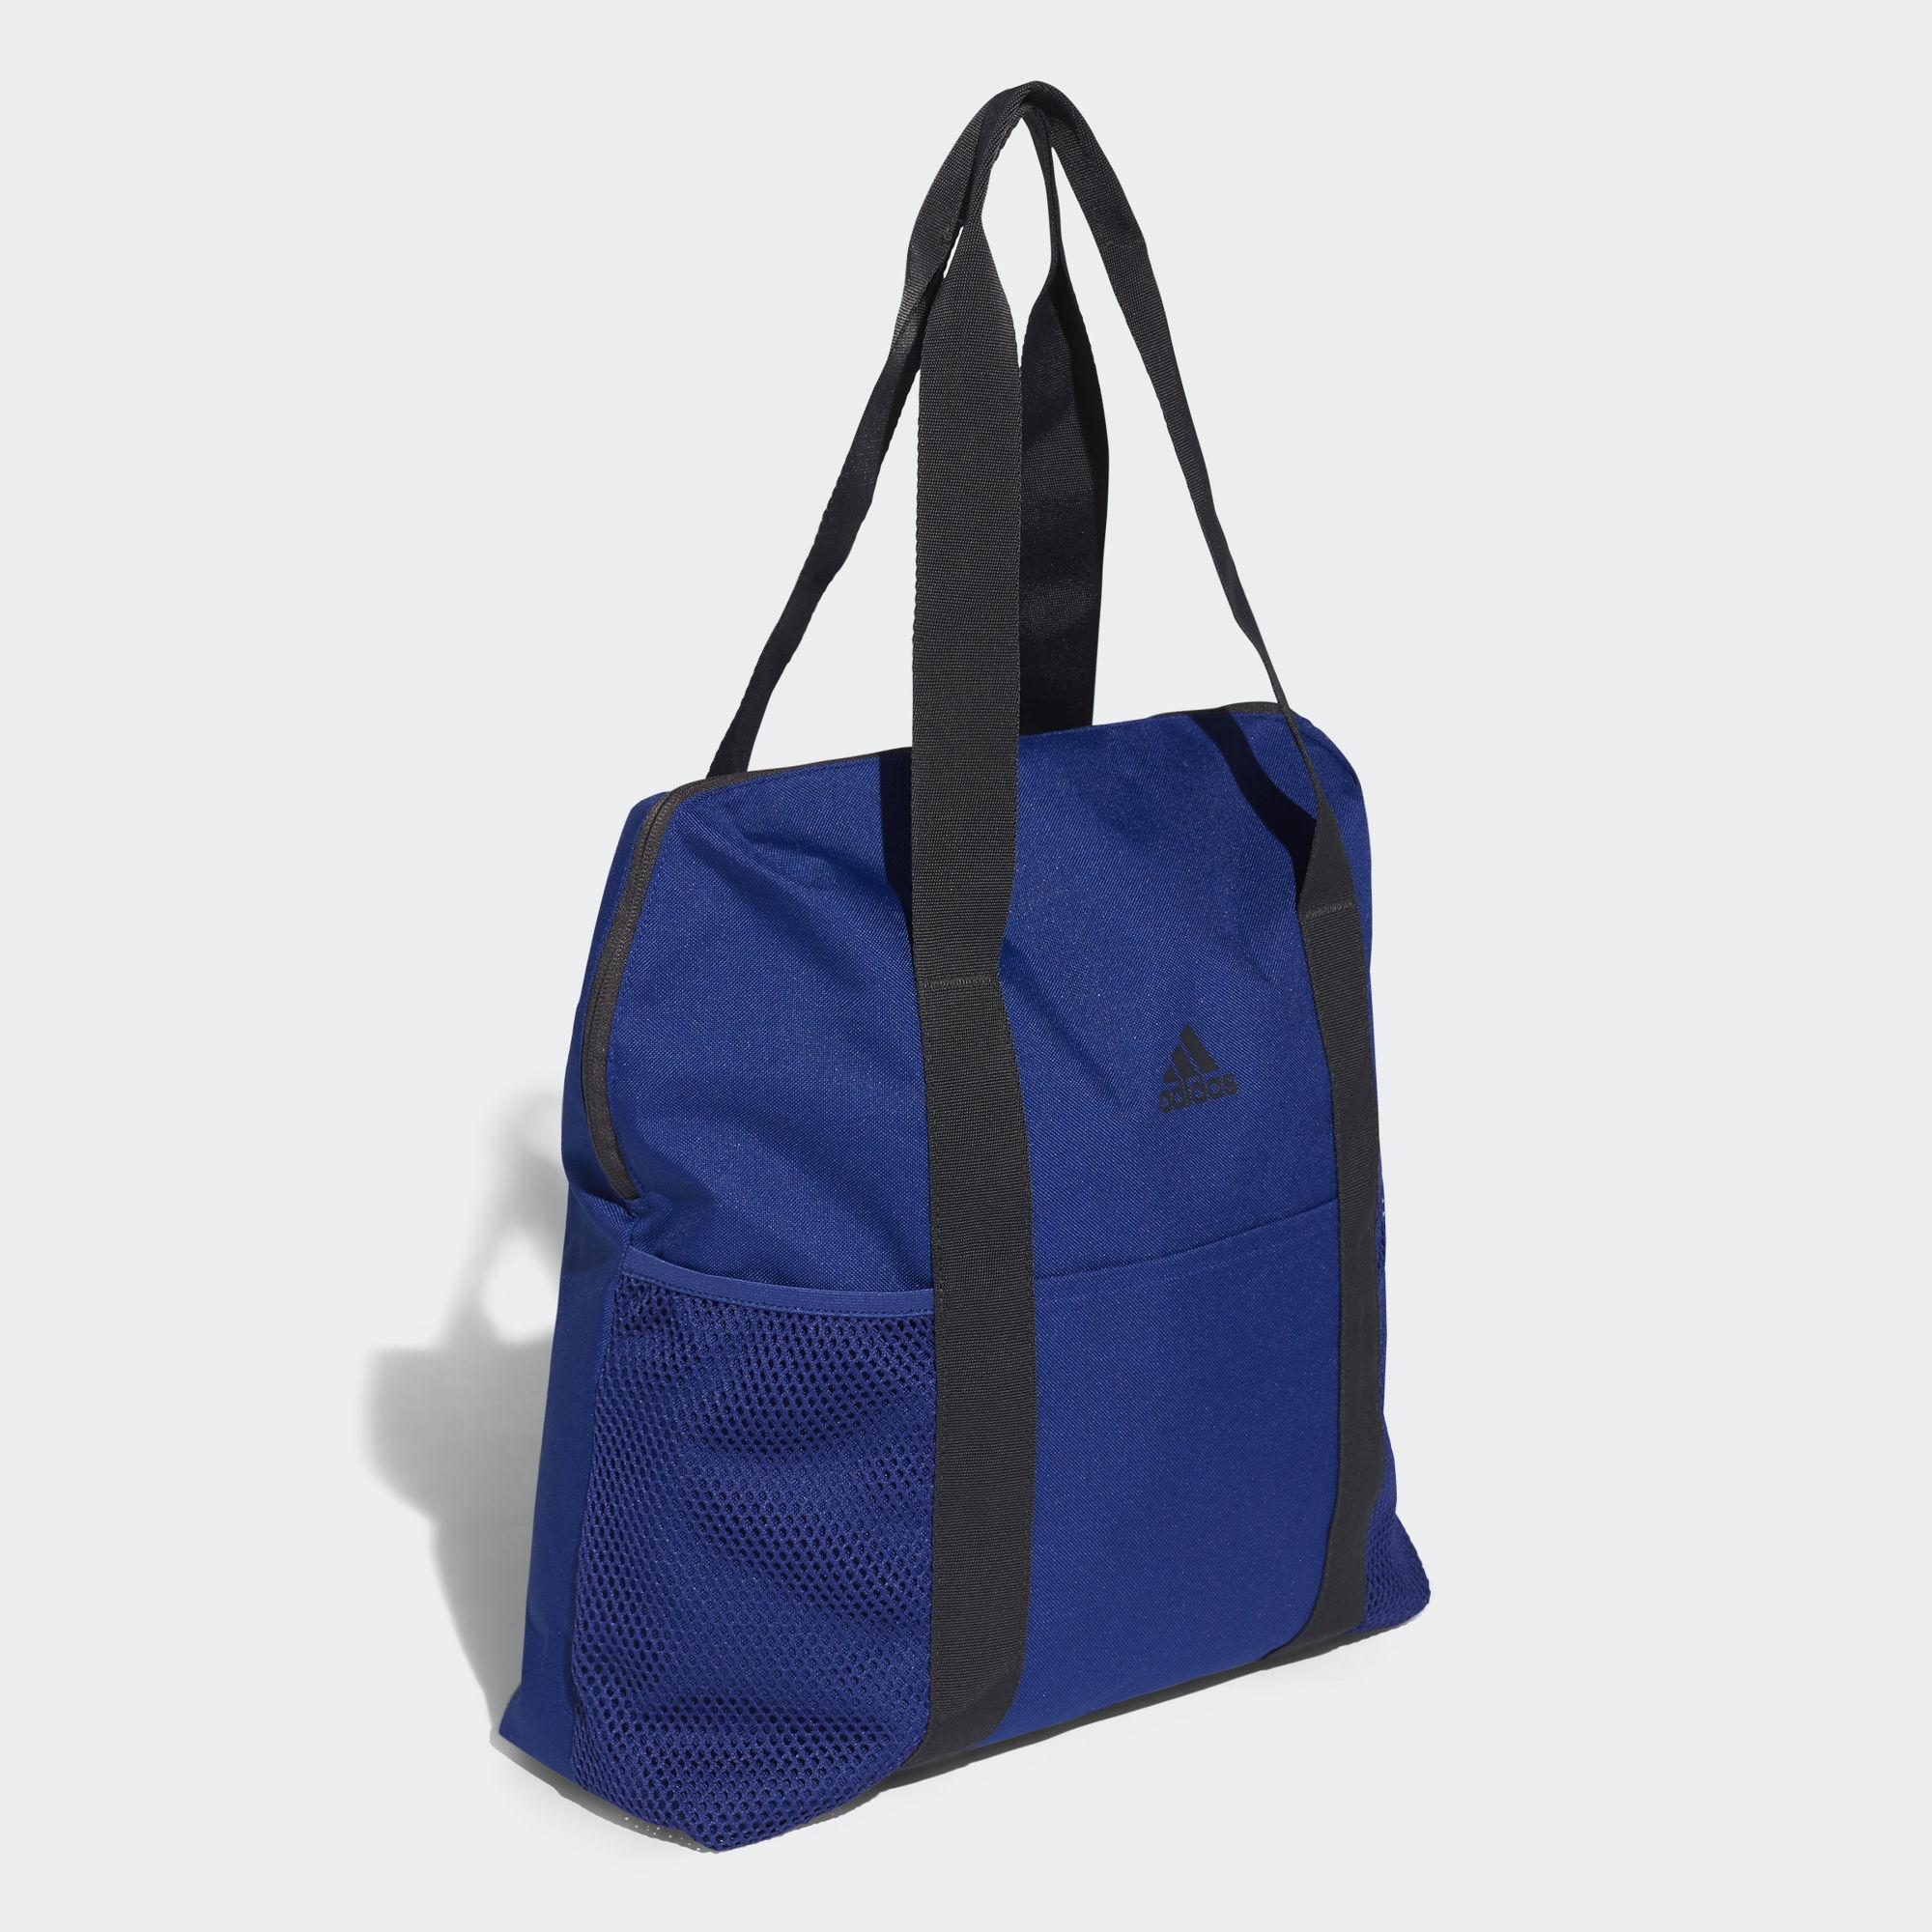 0bdd2bb9cf Adidas tas gym Core Tote bag - CZ5888 - biru